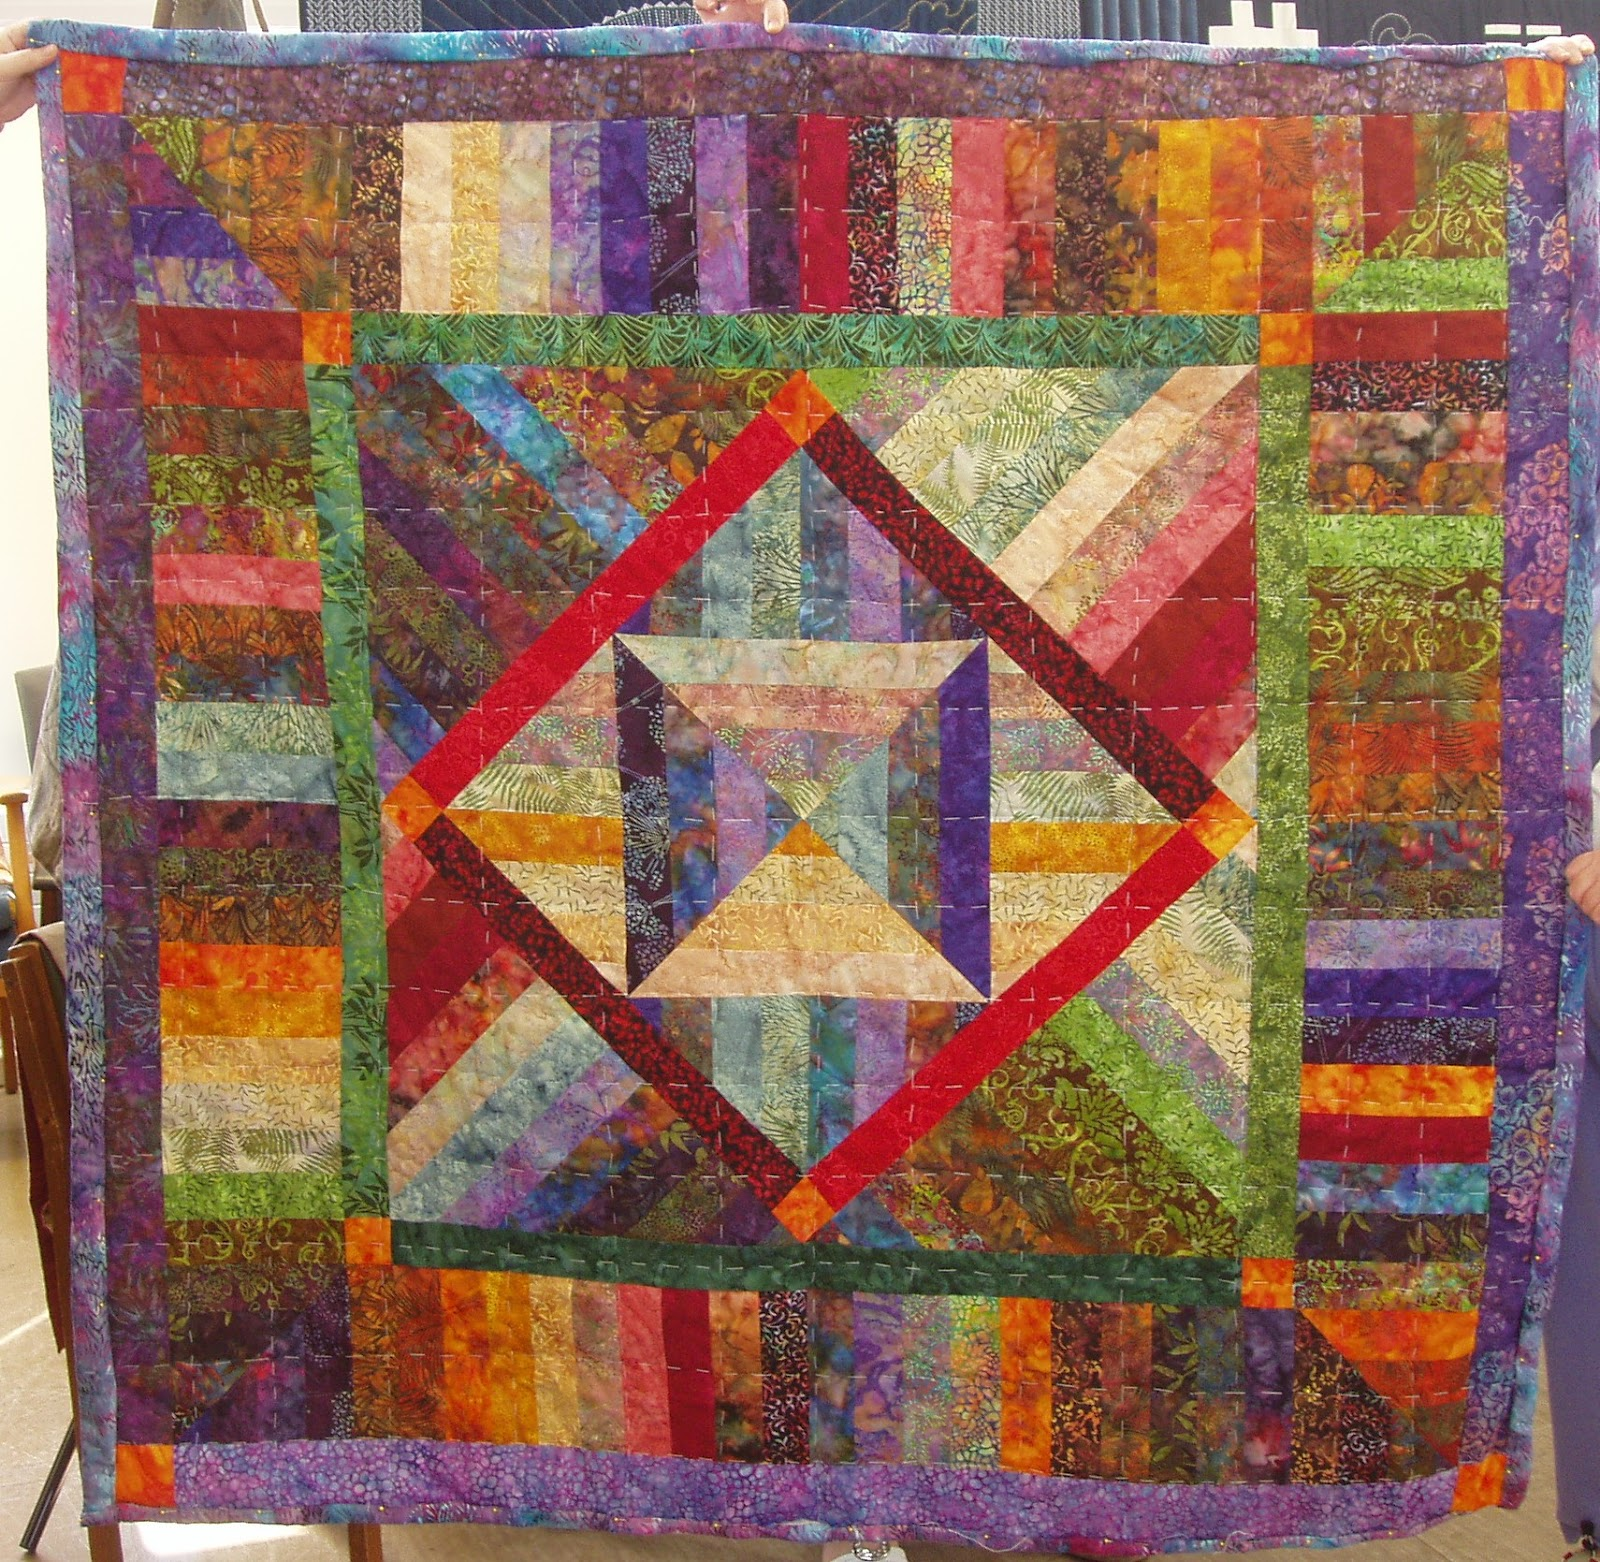 Sashiko And Other Stitching New Amp Most Popular Patchwork Workshops Roundup